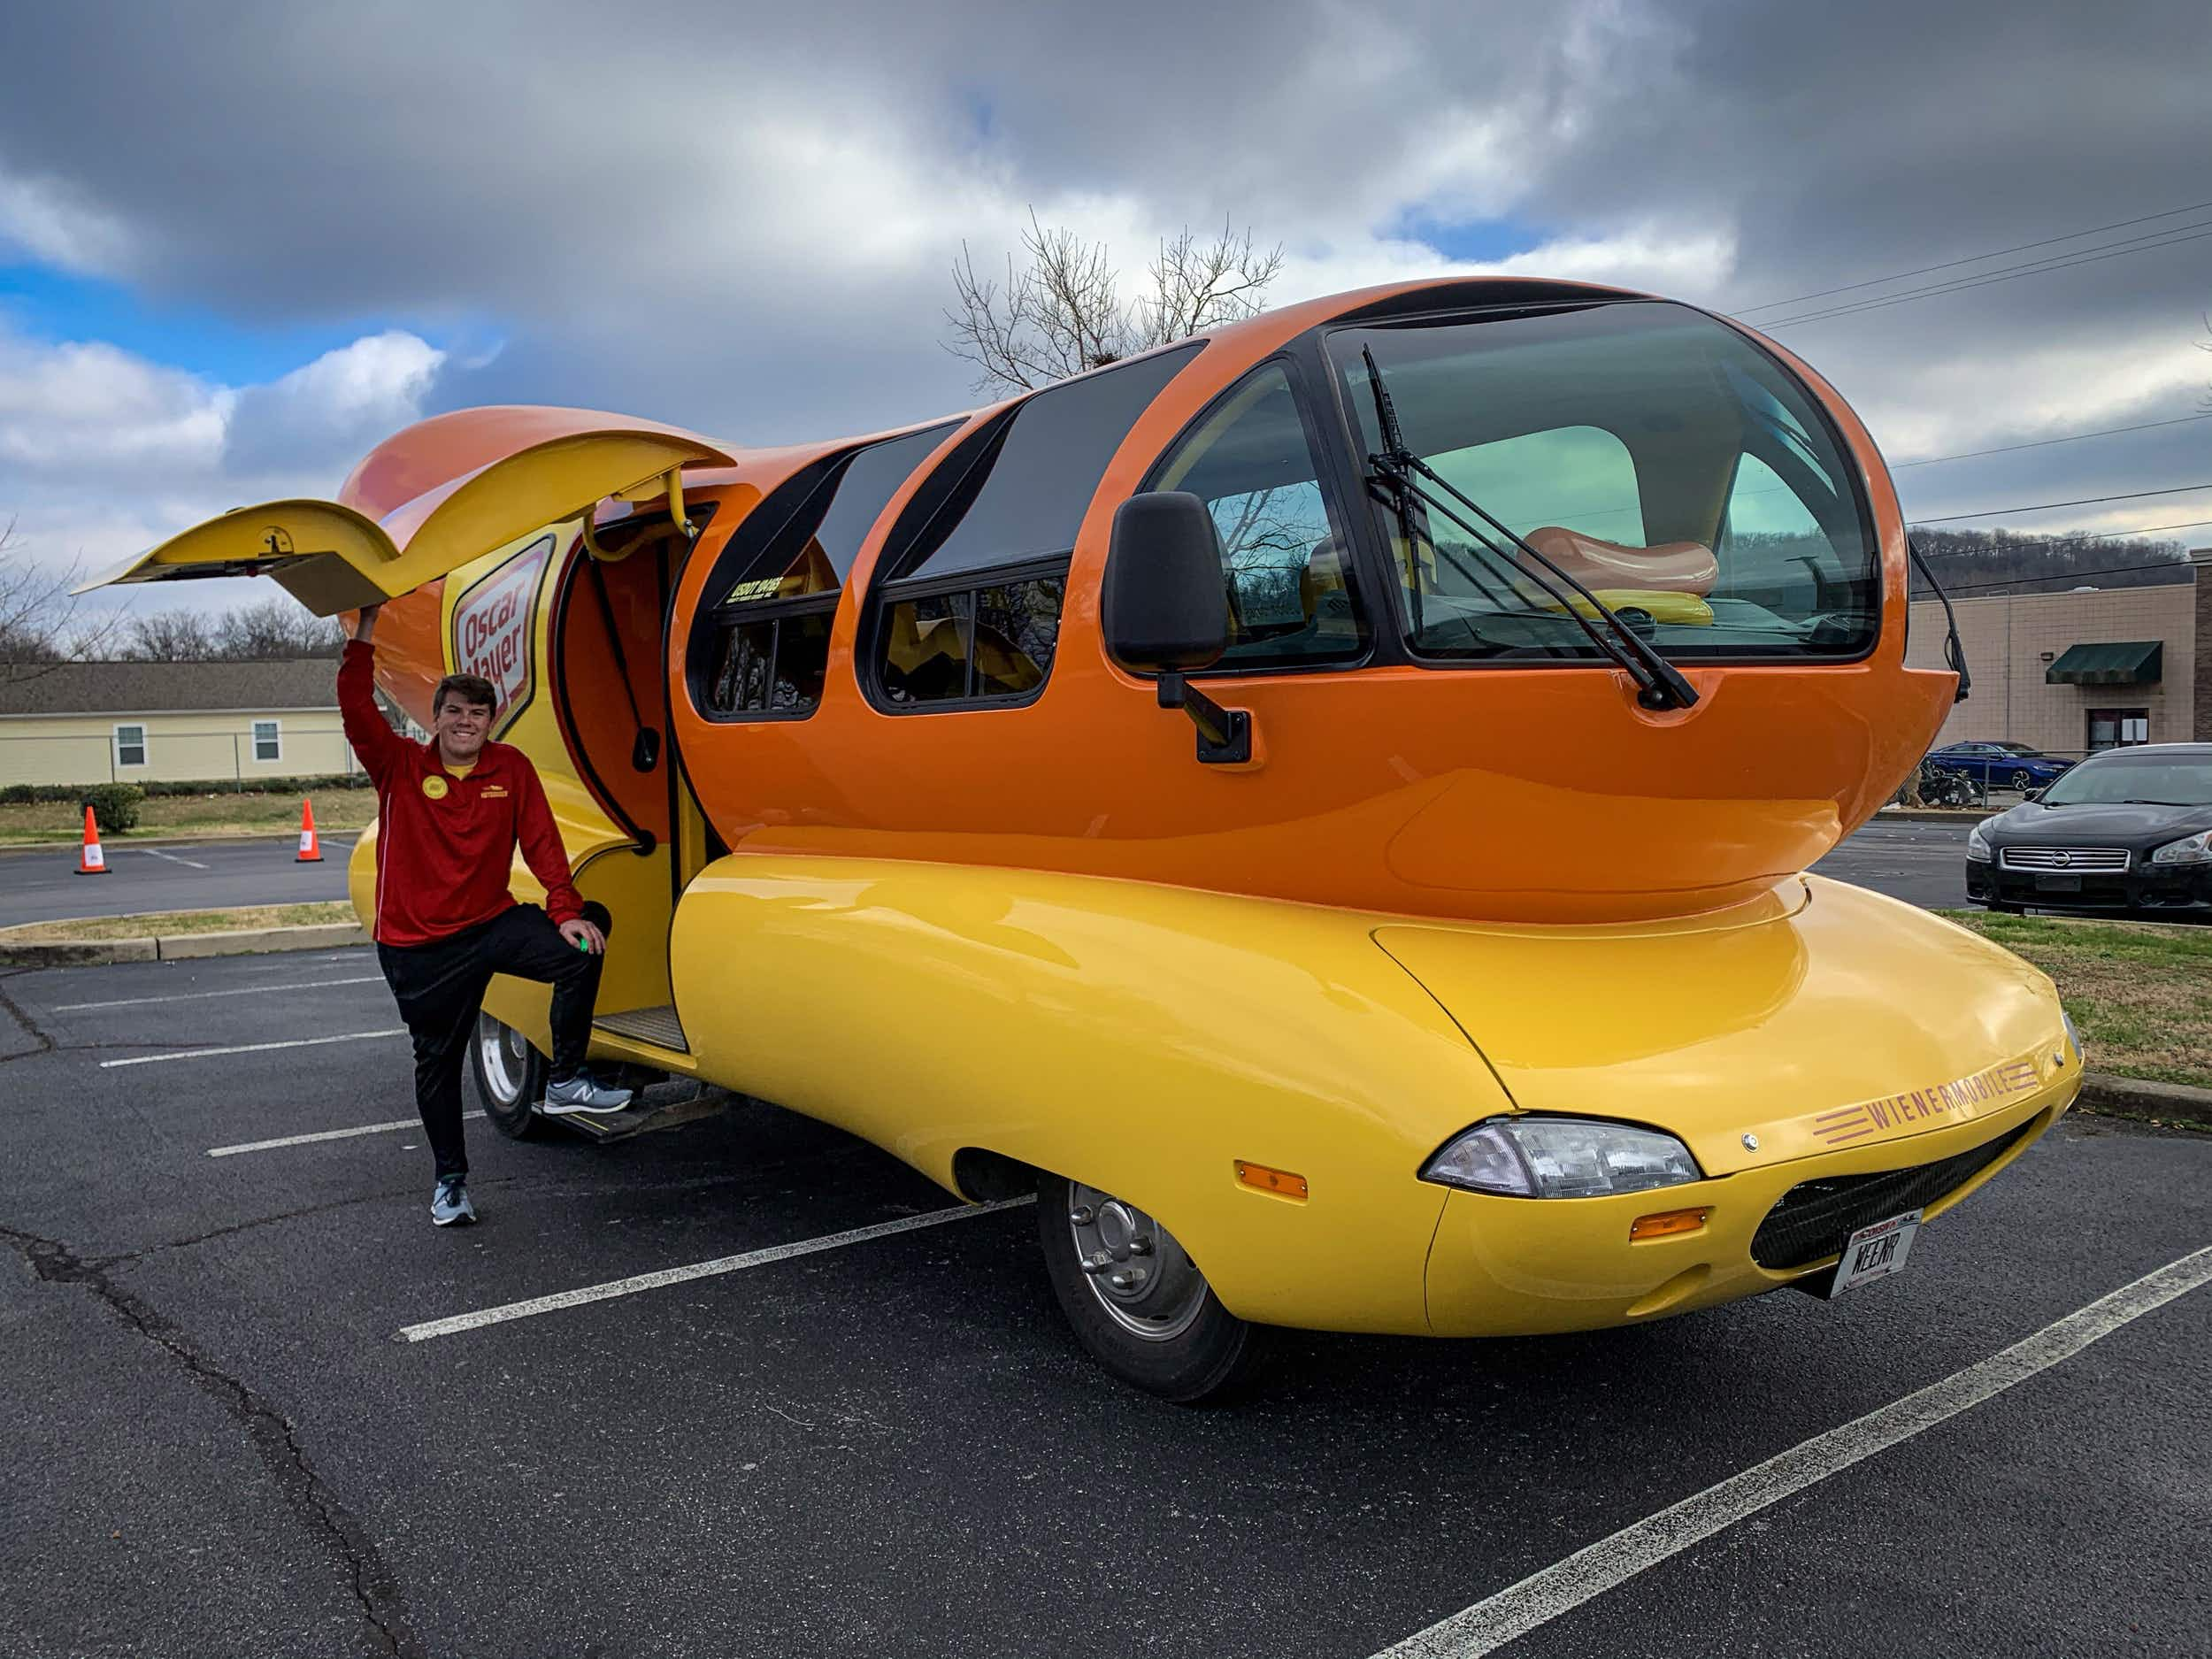 Wherever the Oscar Mayer Wienermobile travels, happy people follow. Alex Hale is one of the 'Hotdoggers' who drives the sausage across the USA © Bailey Freeman / Lonely Planet